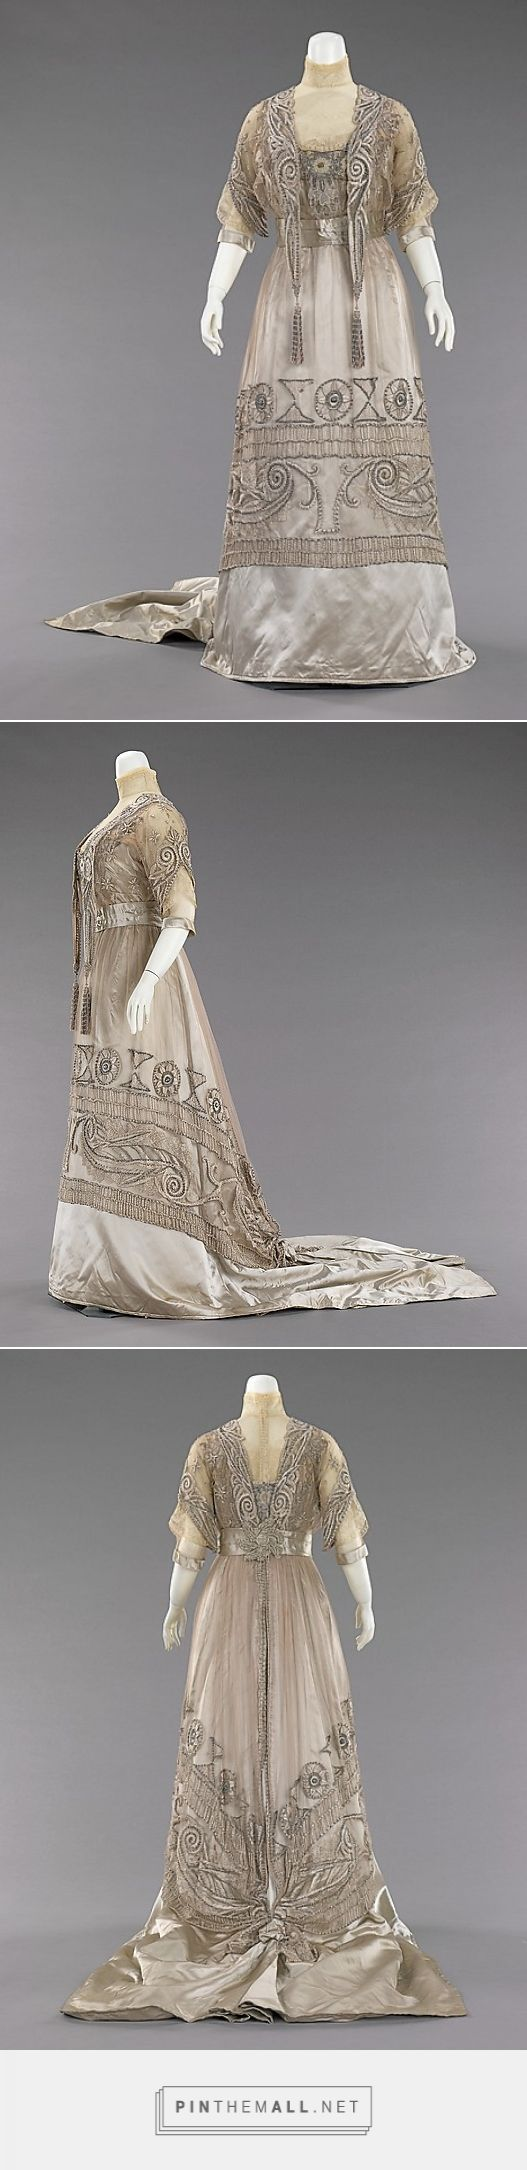 Evening dress attributed to Mrs. Dunstan 1908-10 American | The Metropolitan Museum of Art - created via http://pinthemall.net